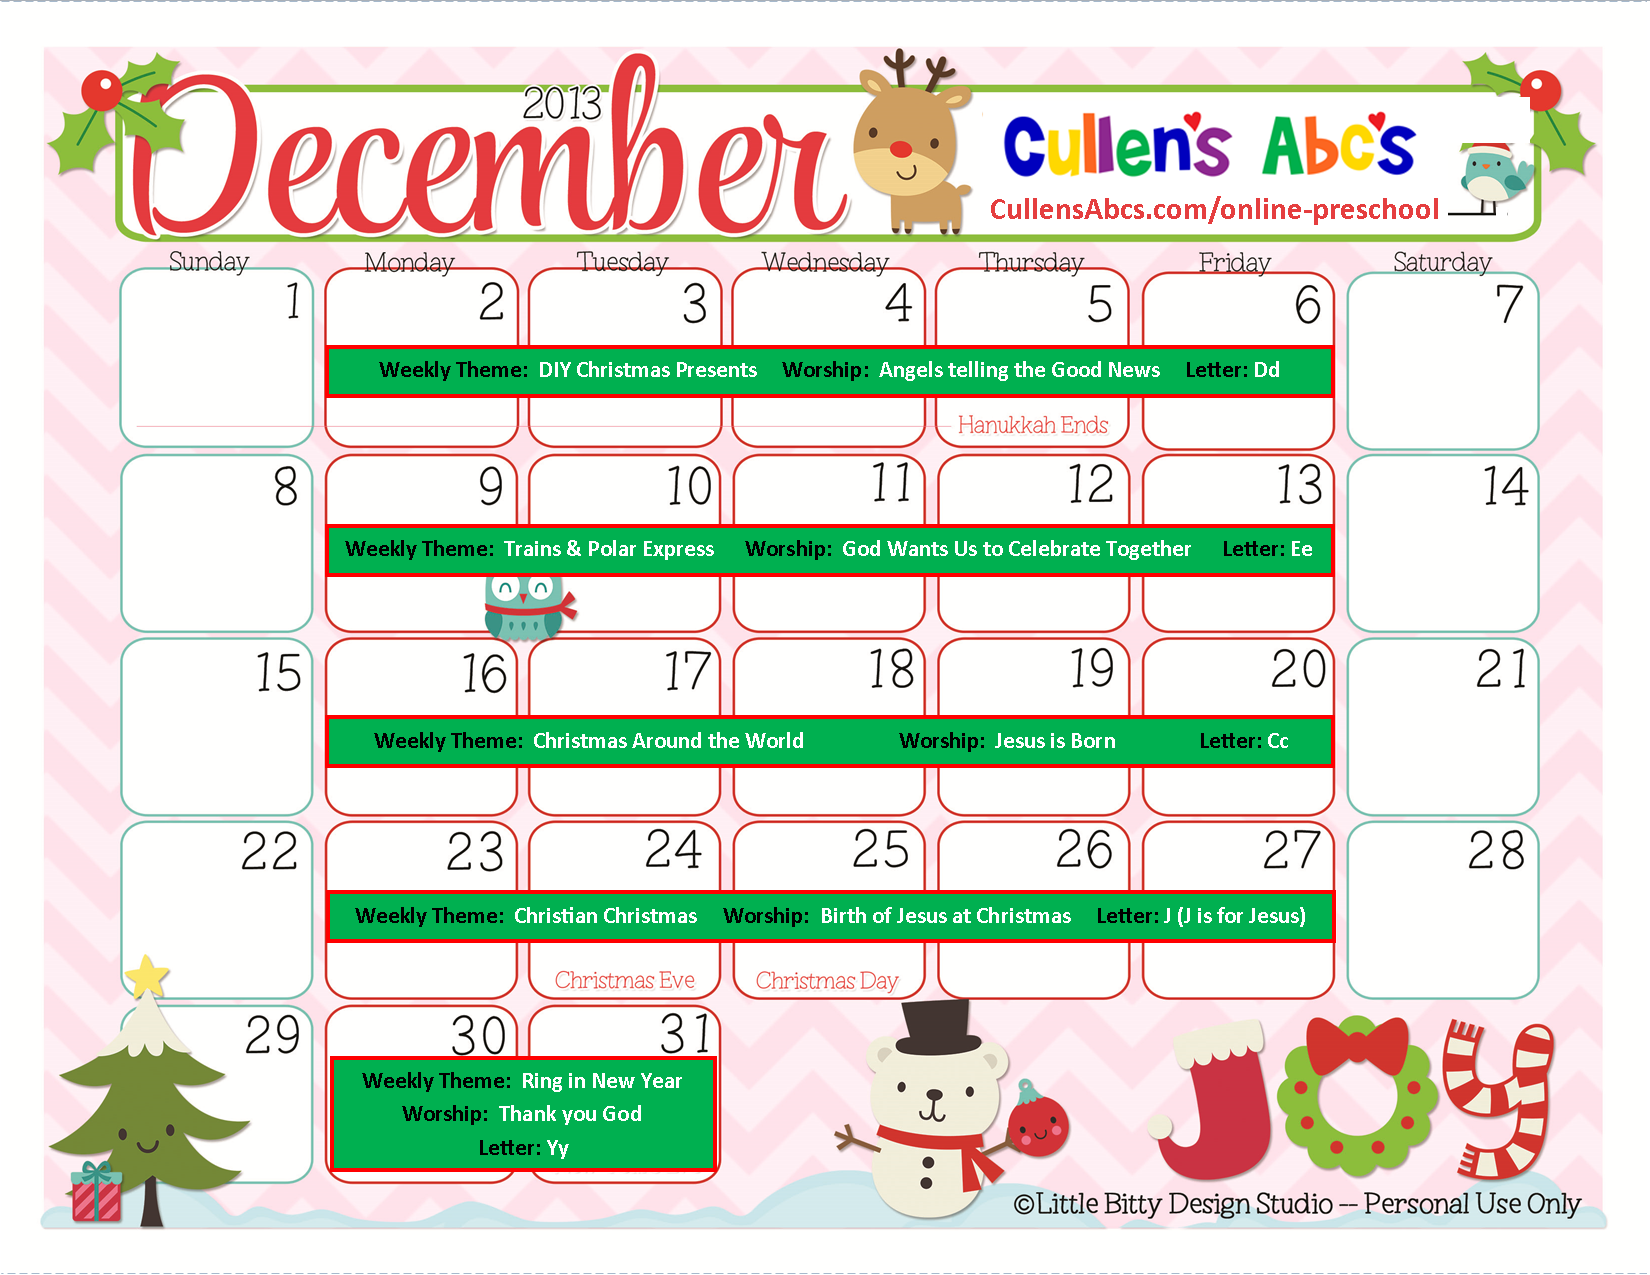 Calendar Category Ideas : Preschool calendars online and children s